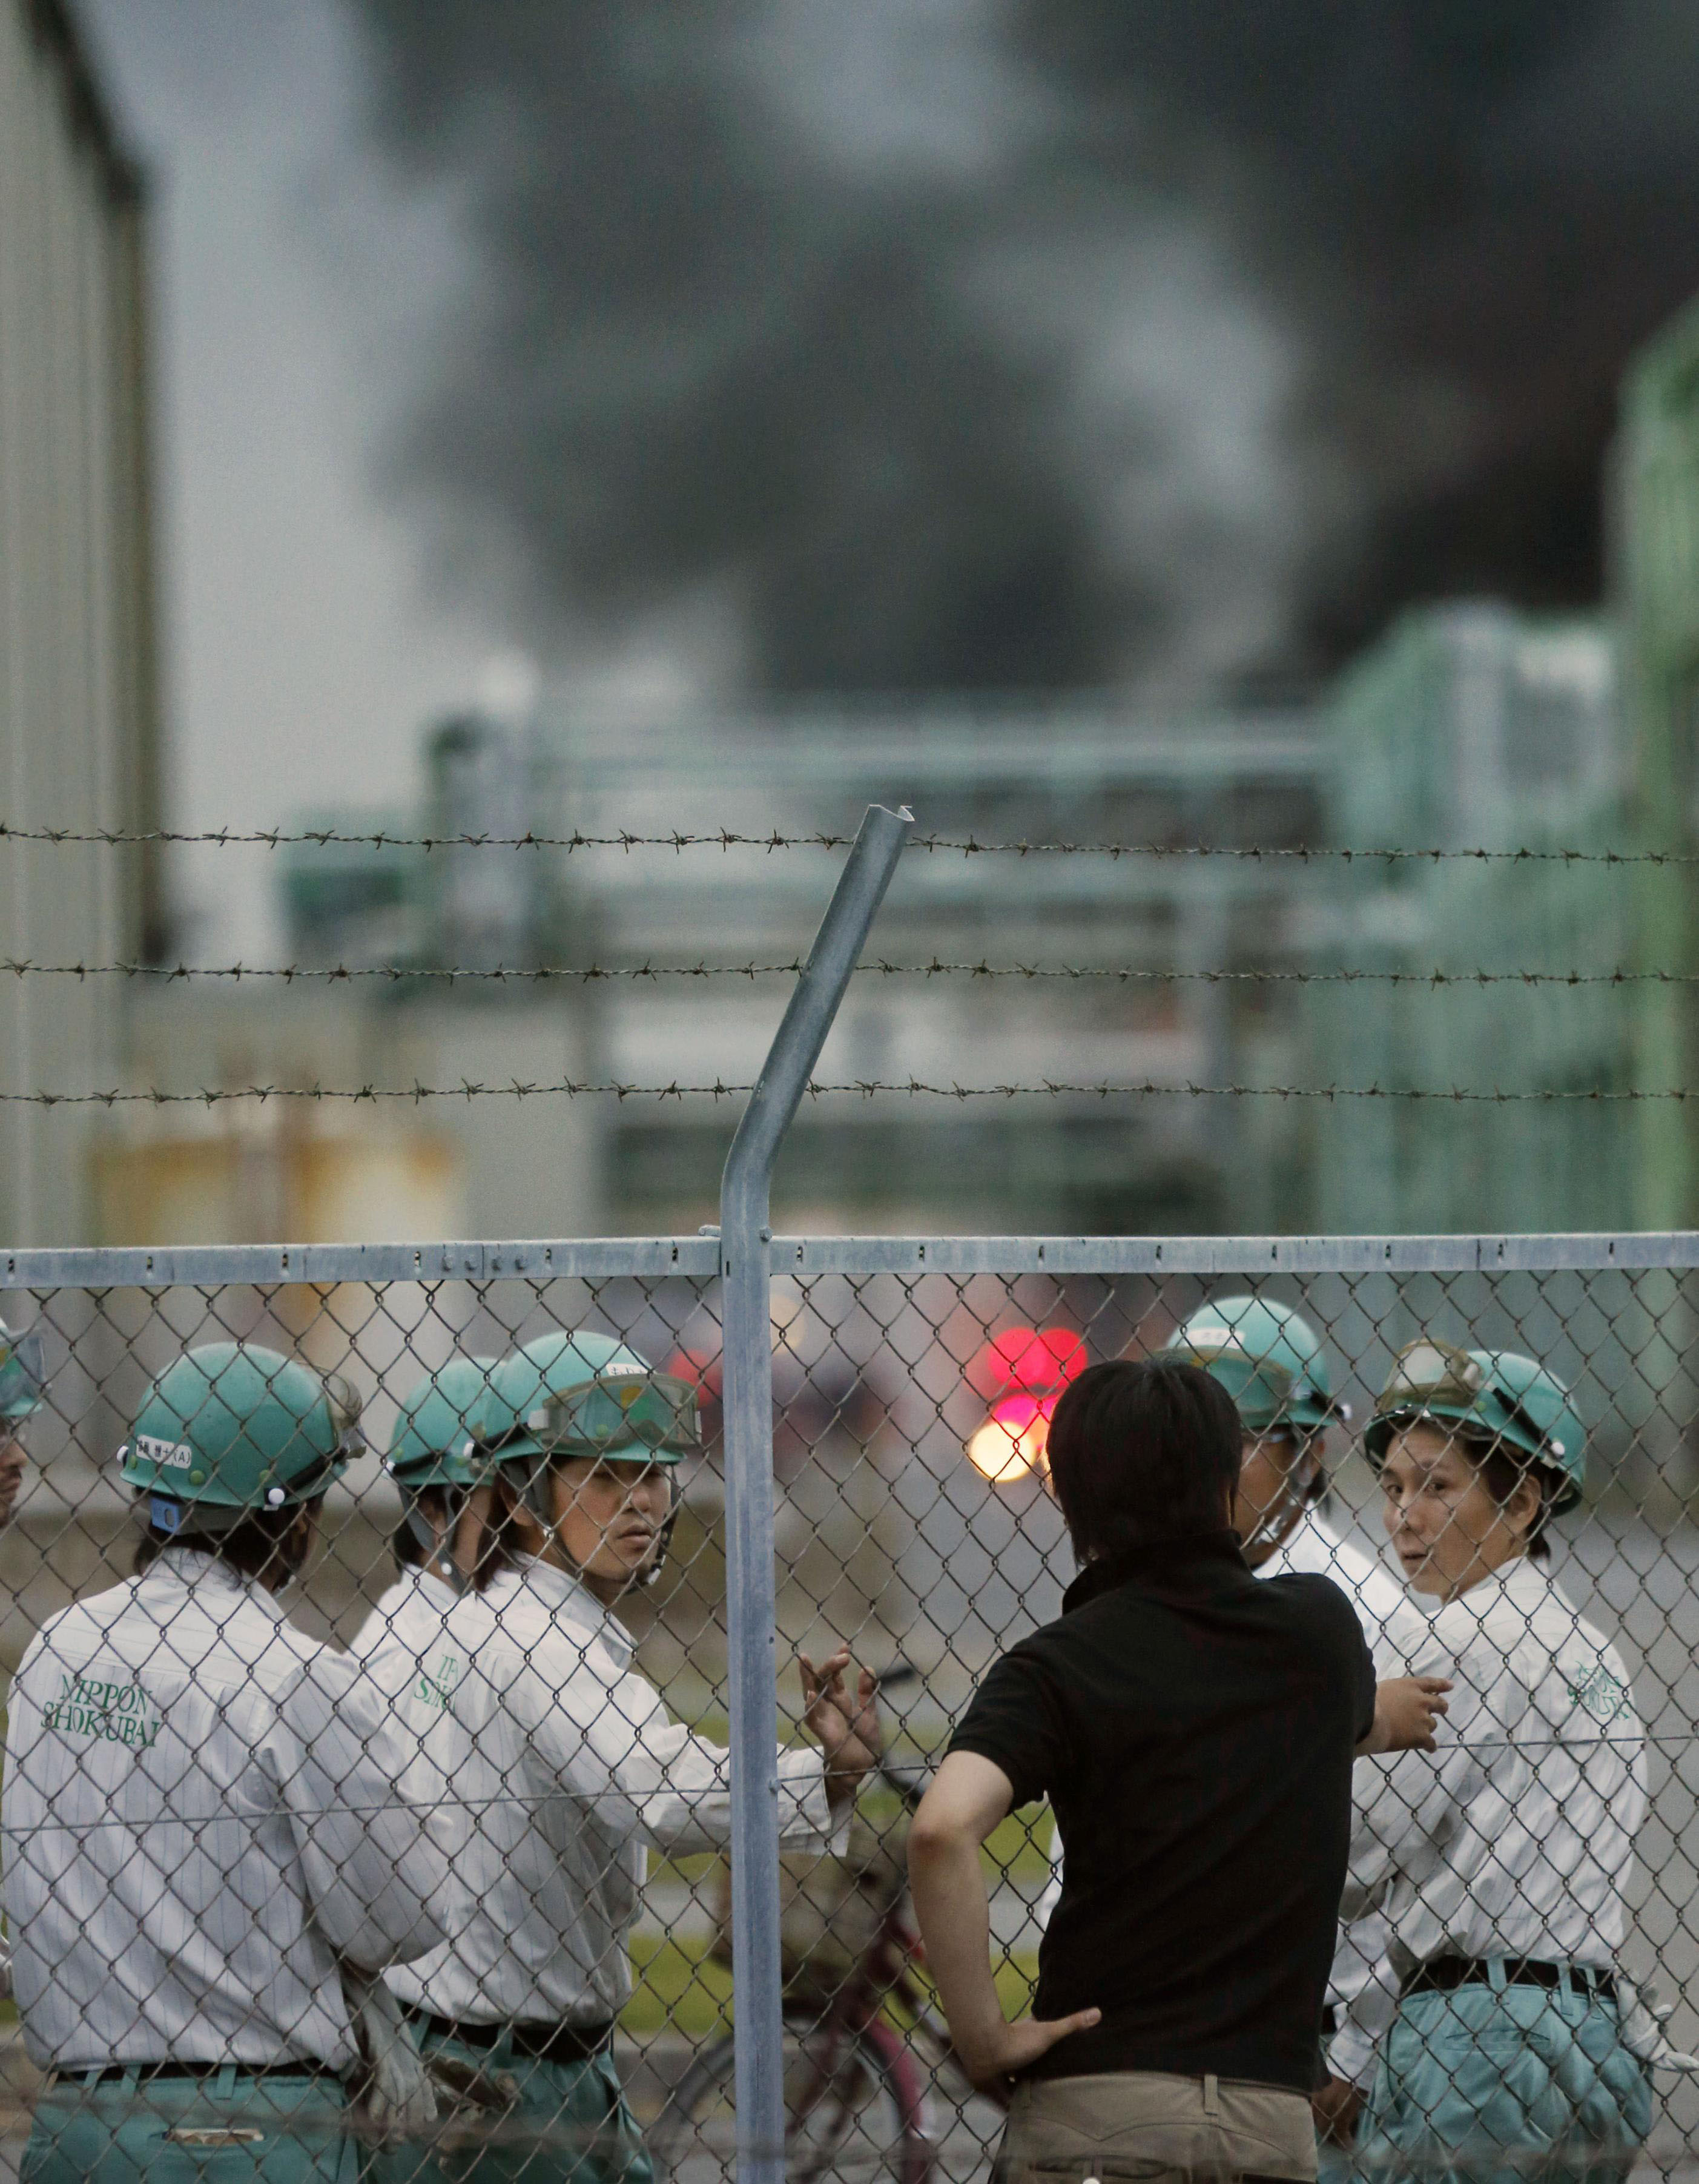 Break time: Workers stand by while a fire burns in the Nippon Shokubai Co. chemical plant in Himeji, Hyogo Prefecture, on Sept. 29. | KYODO